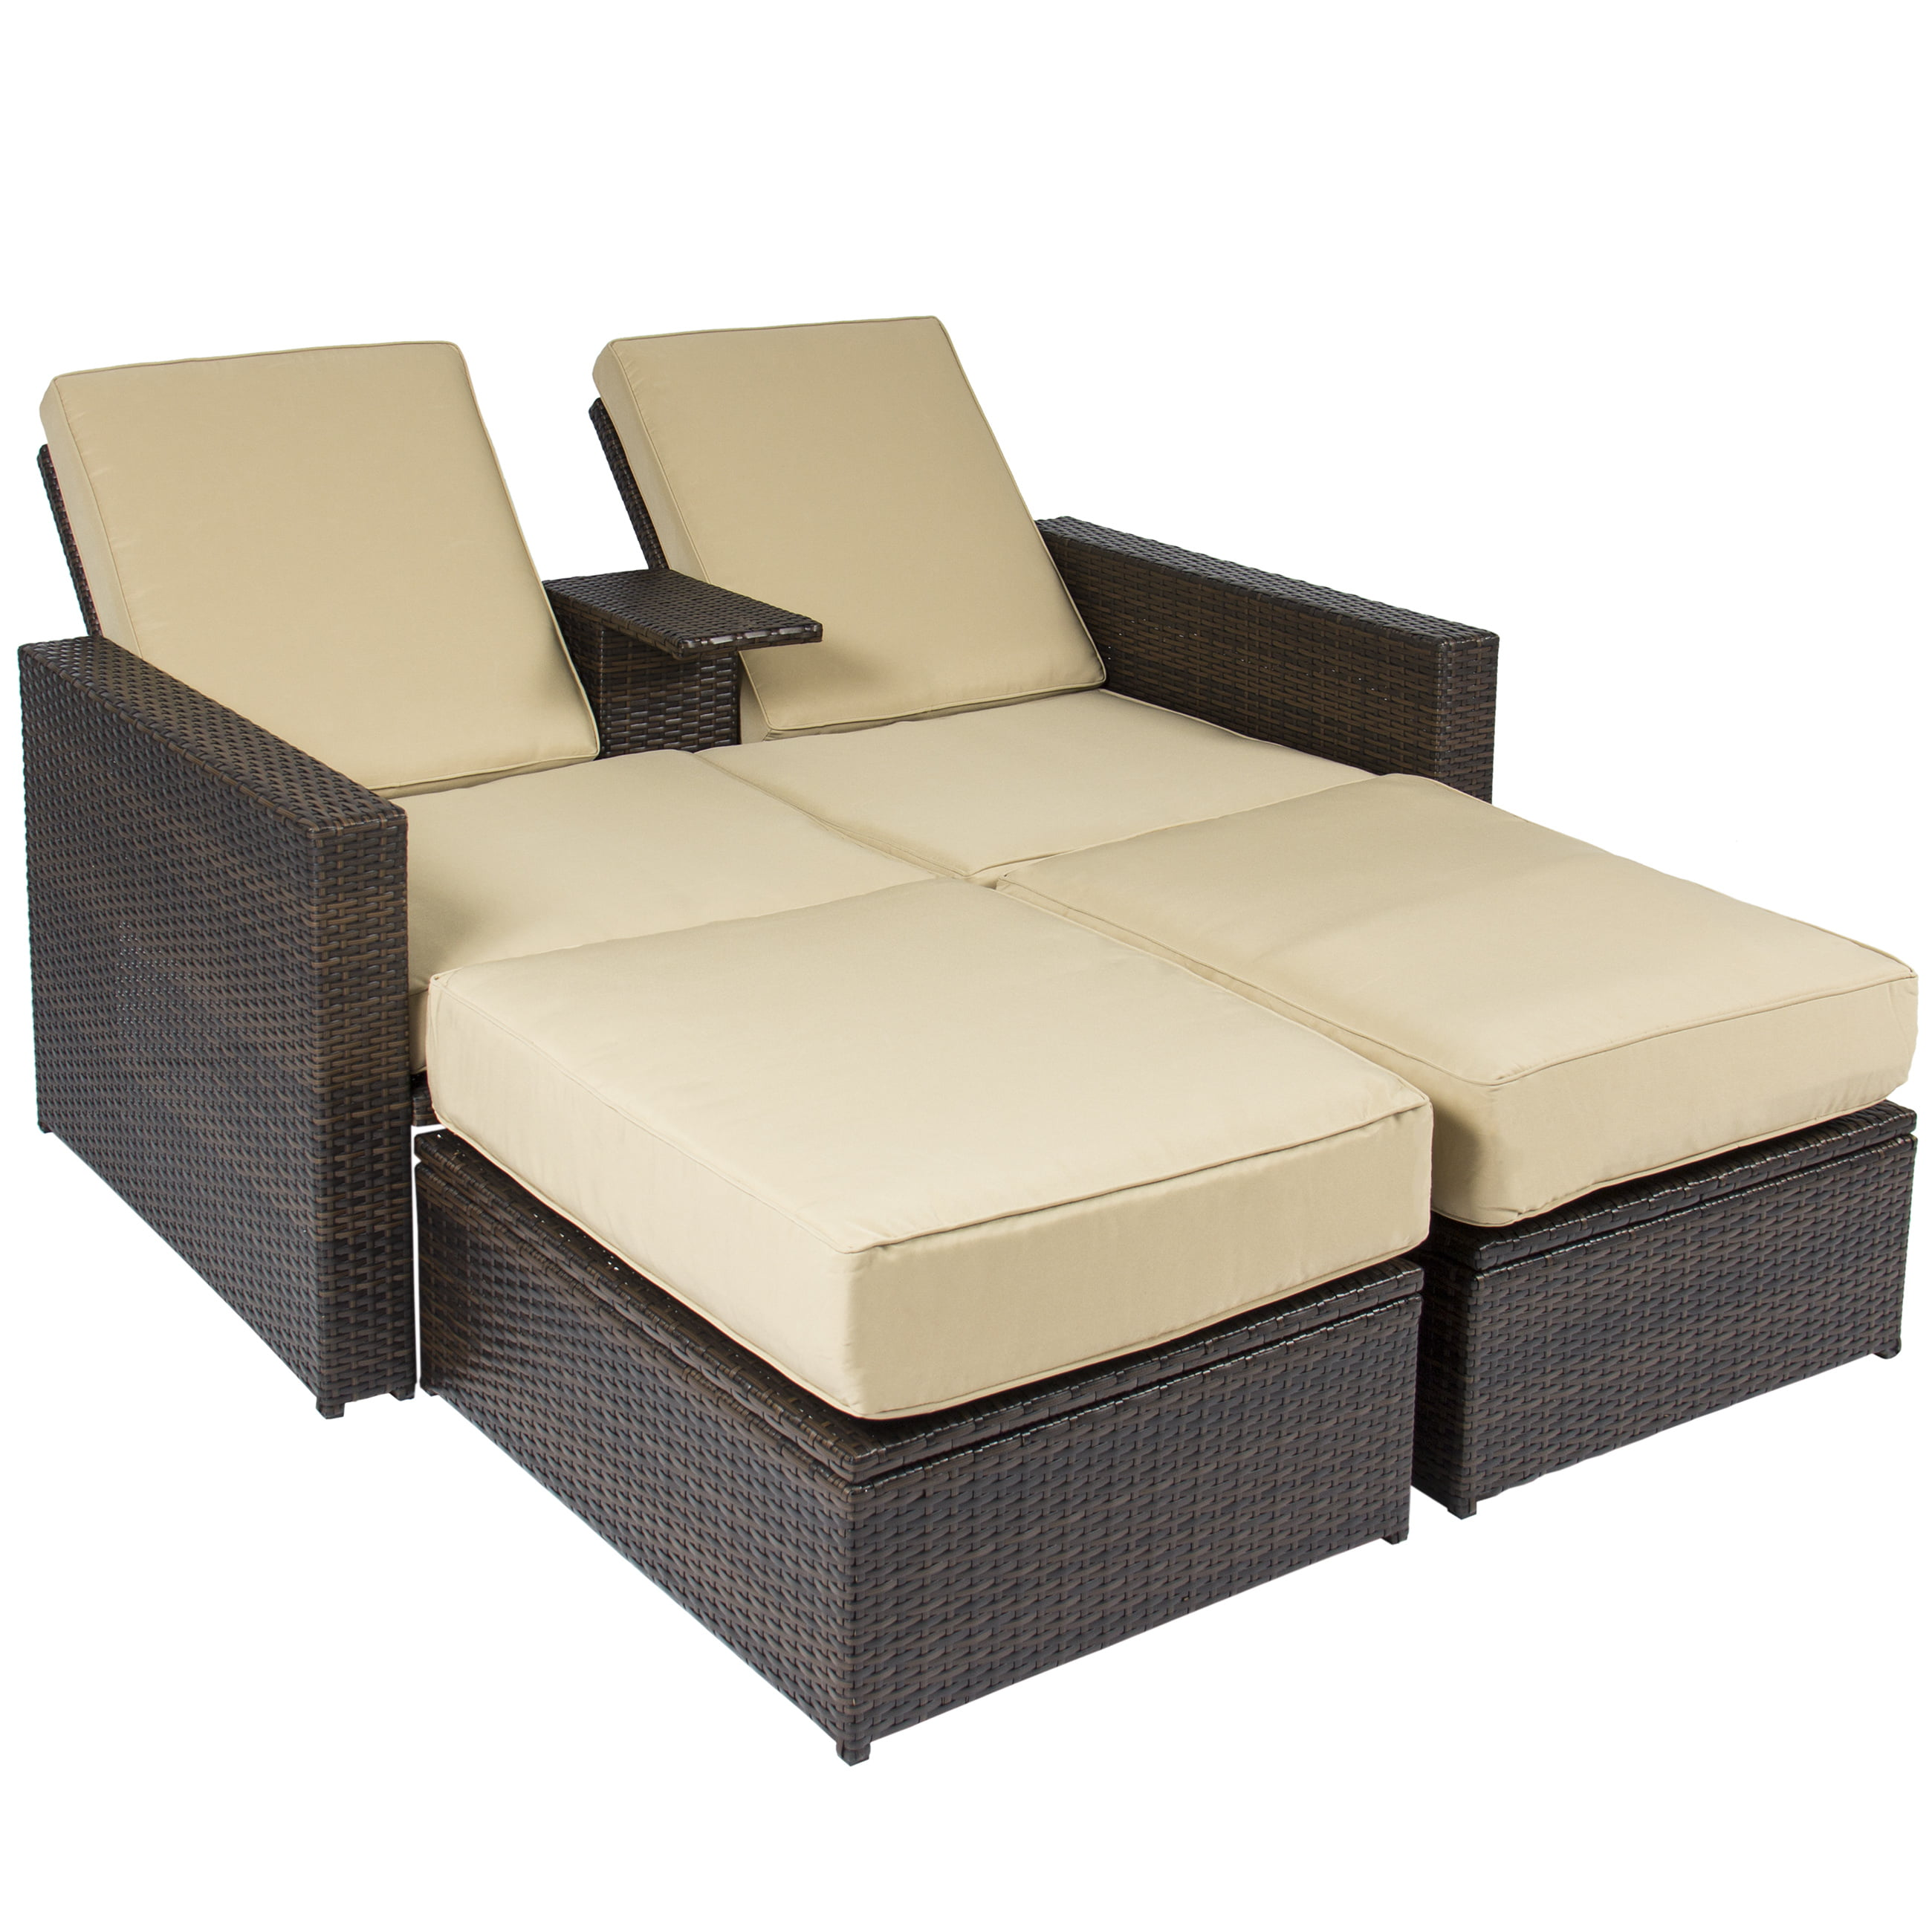 Baner Garden Outdoor Furniture plete Patio PE Wicker Rattan